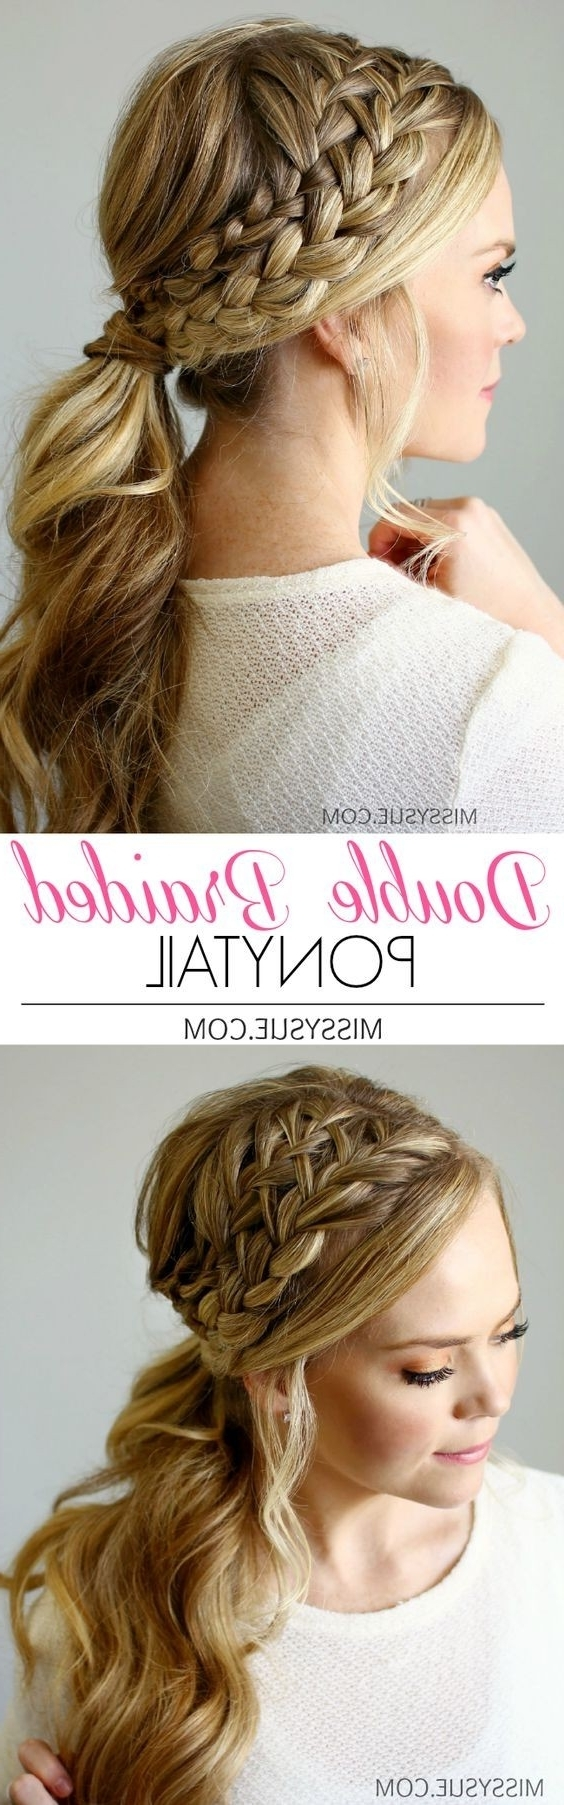 Fashionable Side Braid Hairstyles For Curly Ponytail Within 18 Cute Braided Ponytail Styles – Popular Haircuts (View 5 of 20)